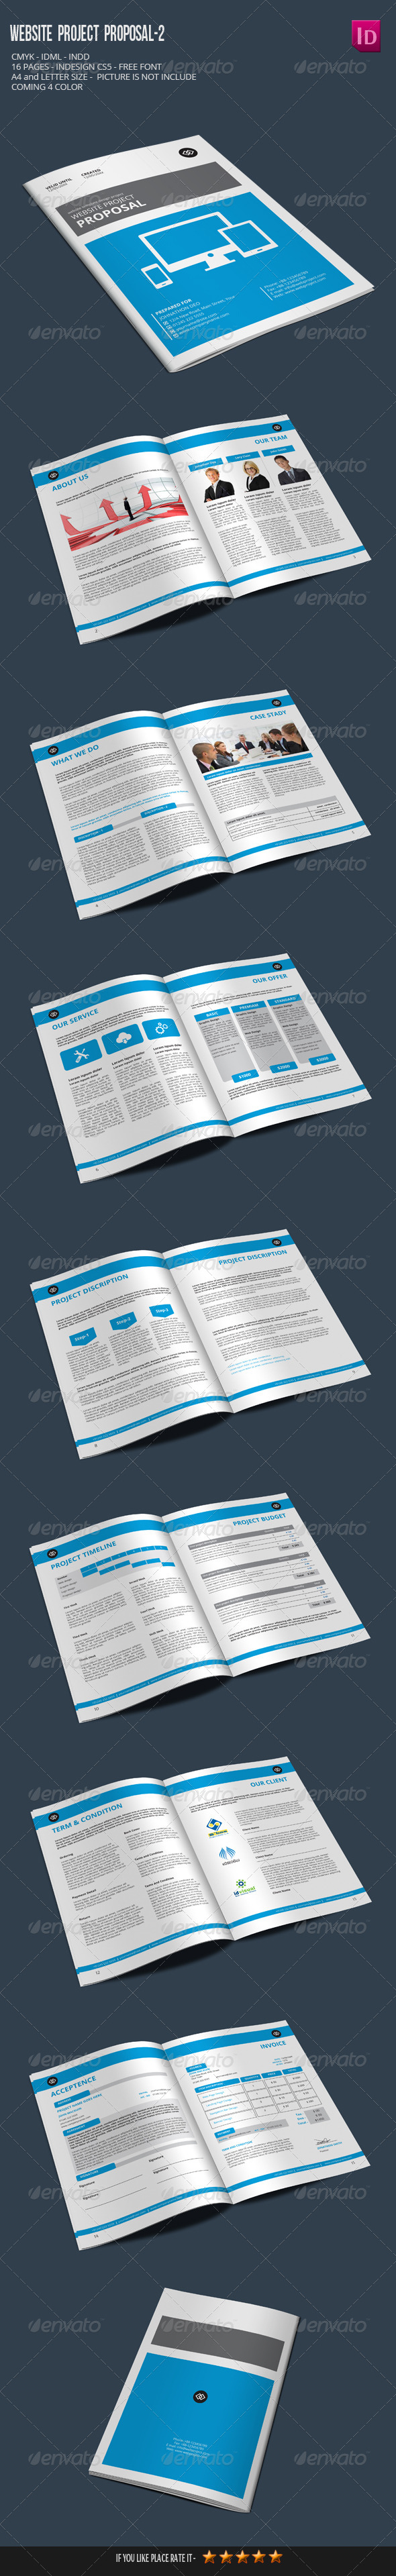 GraphicRiver Website Project Proposal-2 7396816